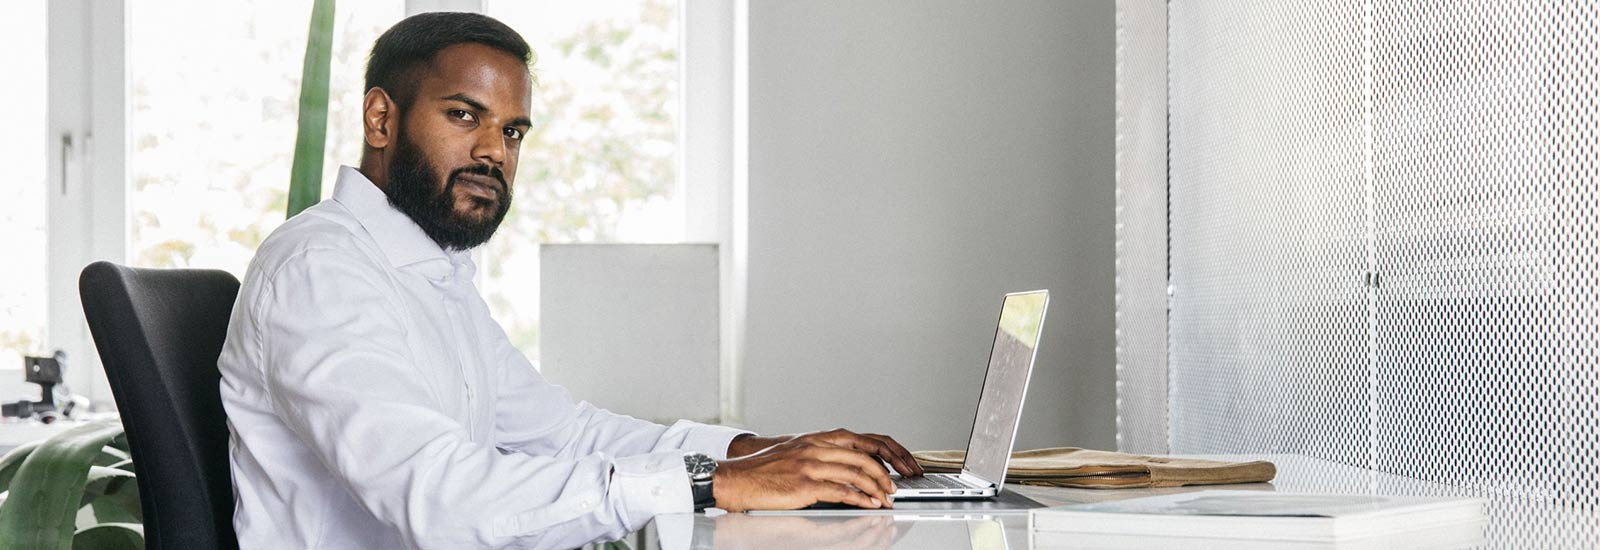 Man sitting in front of a laptop in his office